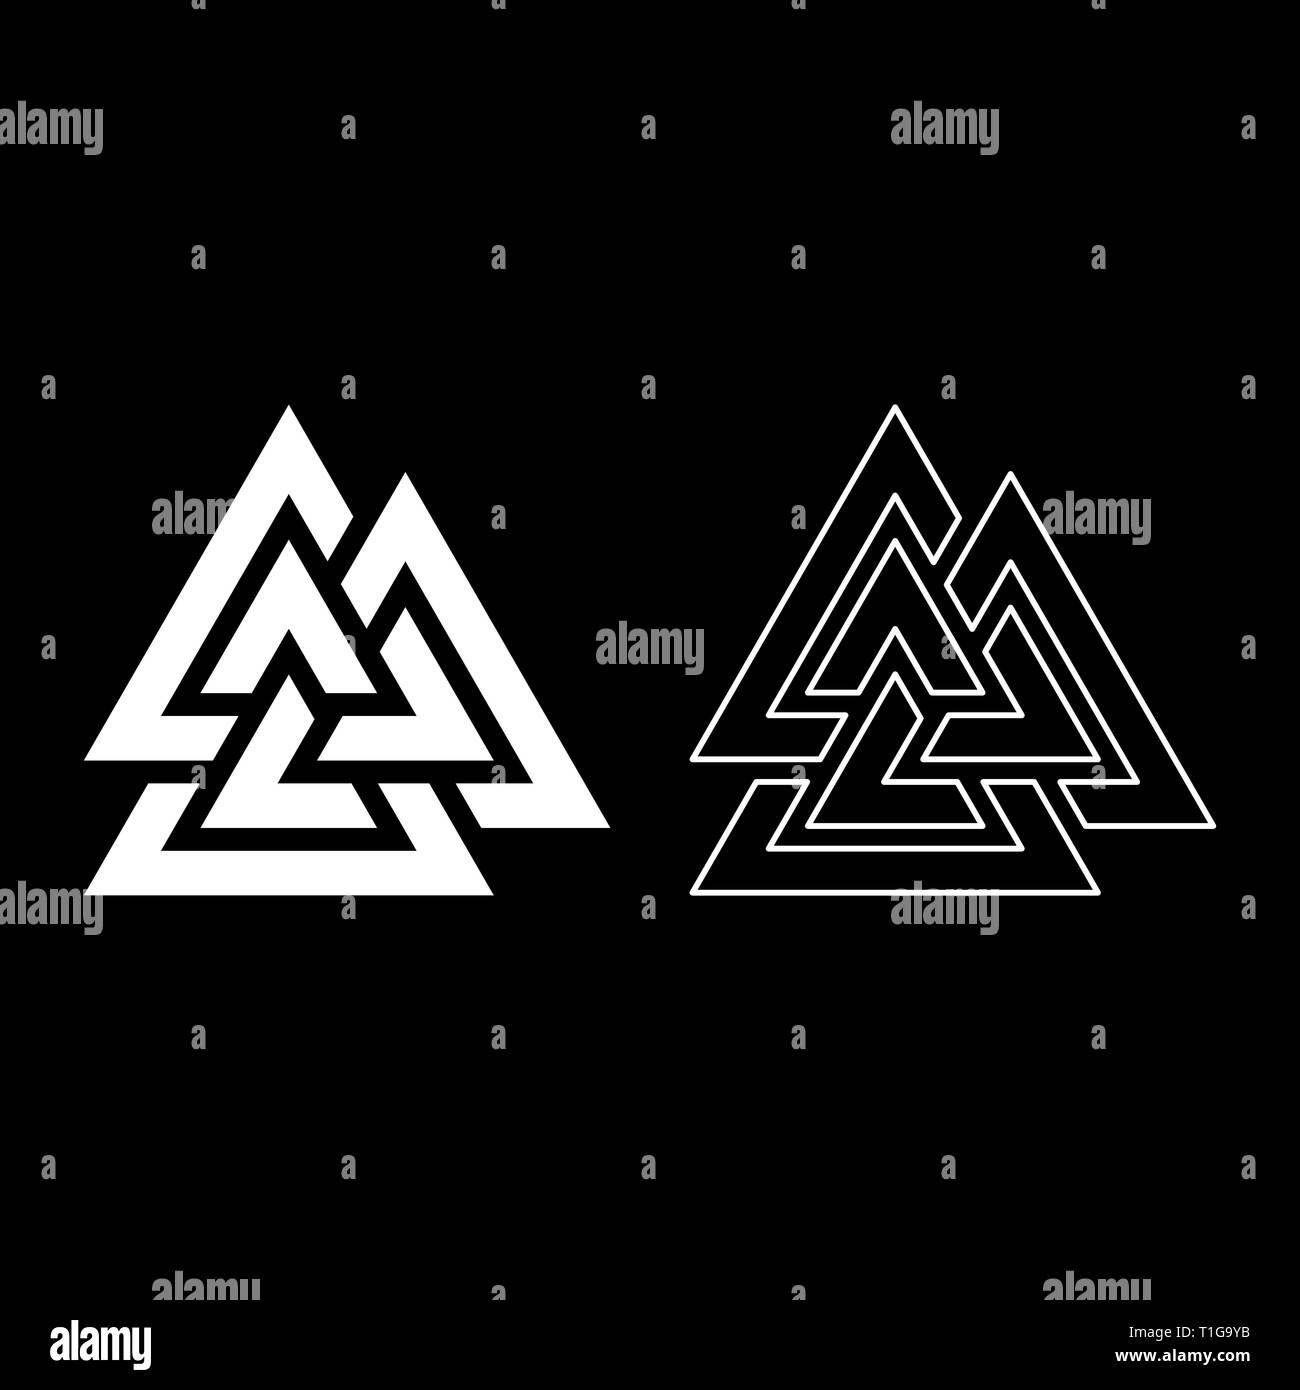 Valknut symbol icon set white color vector illustration flat style simple image - Stock Image